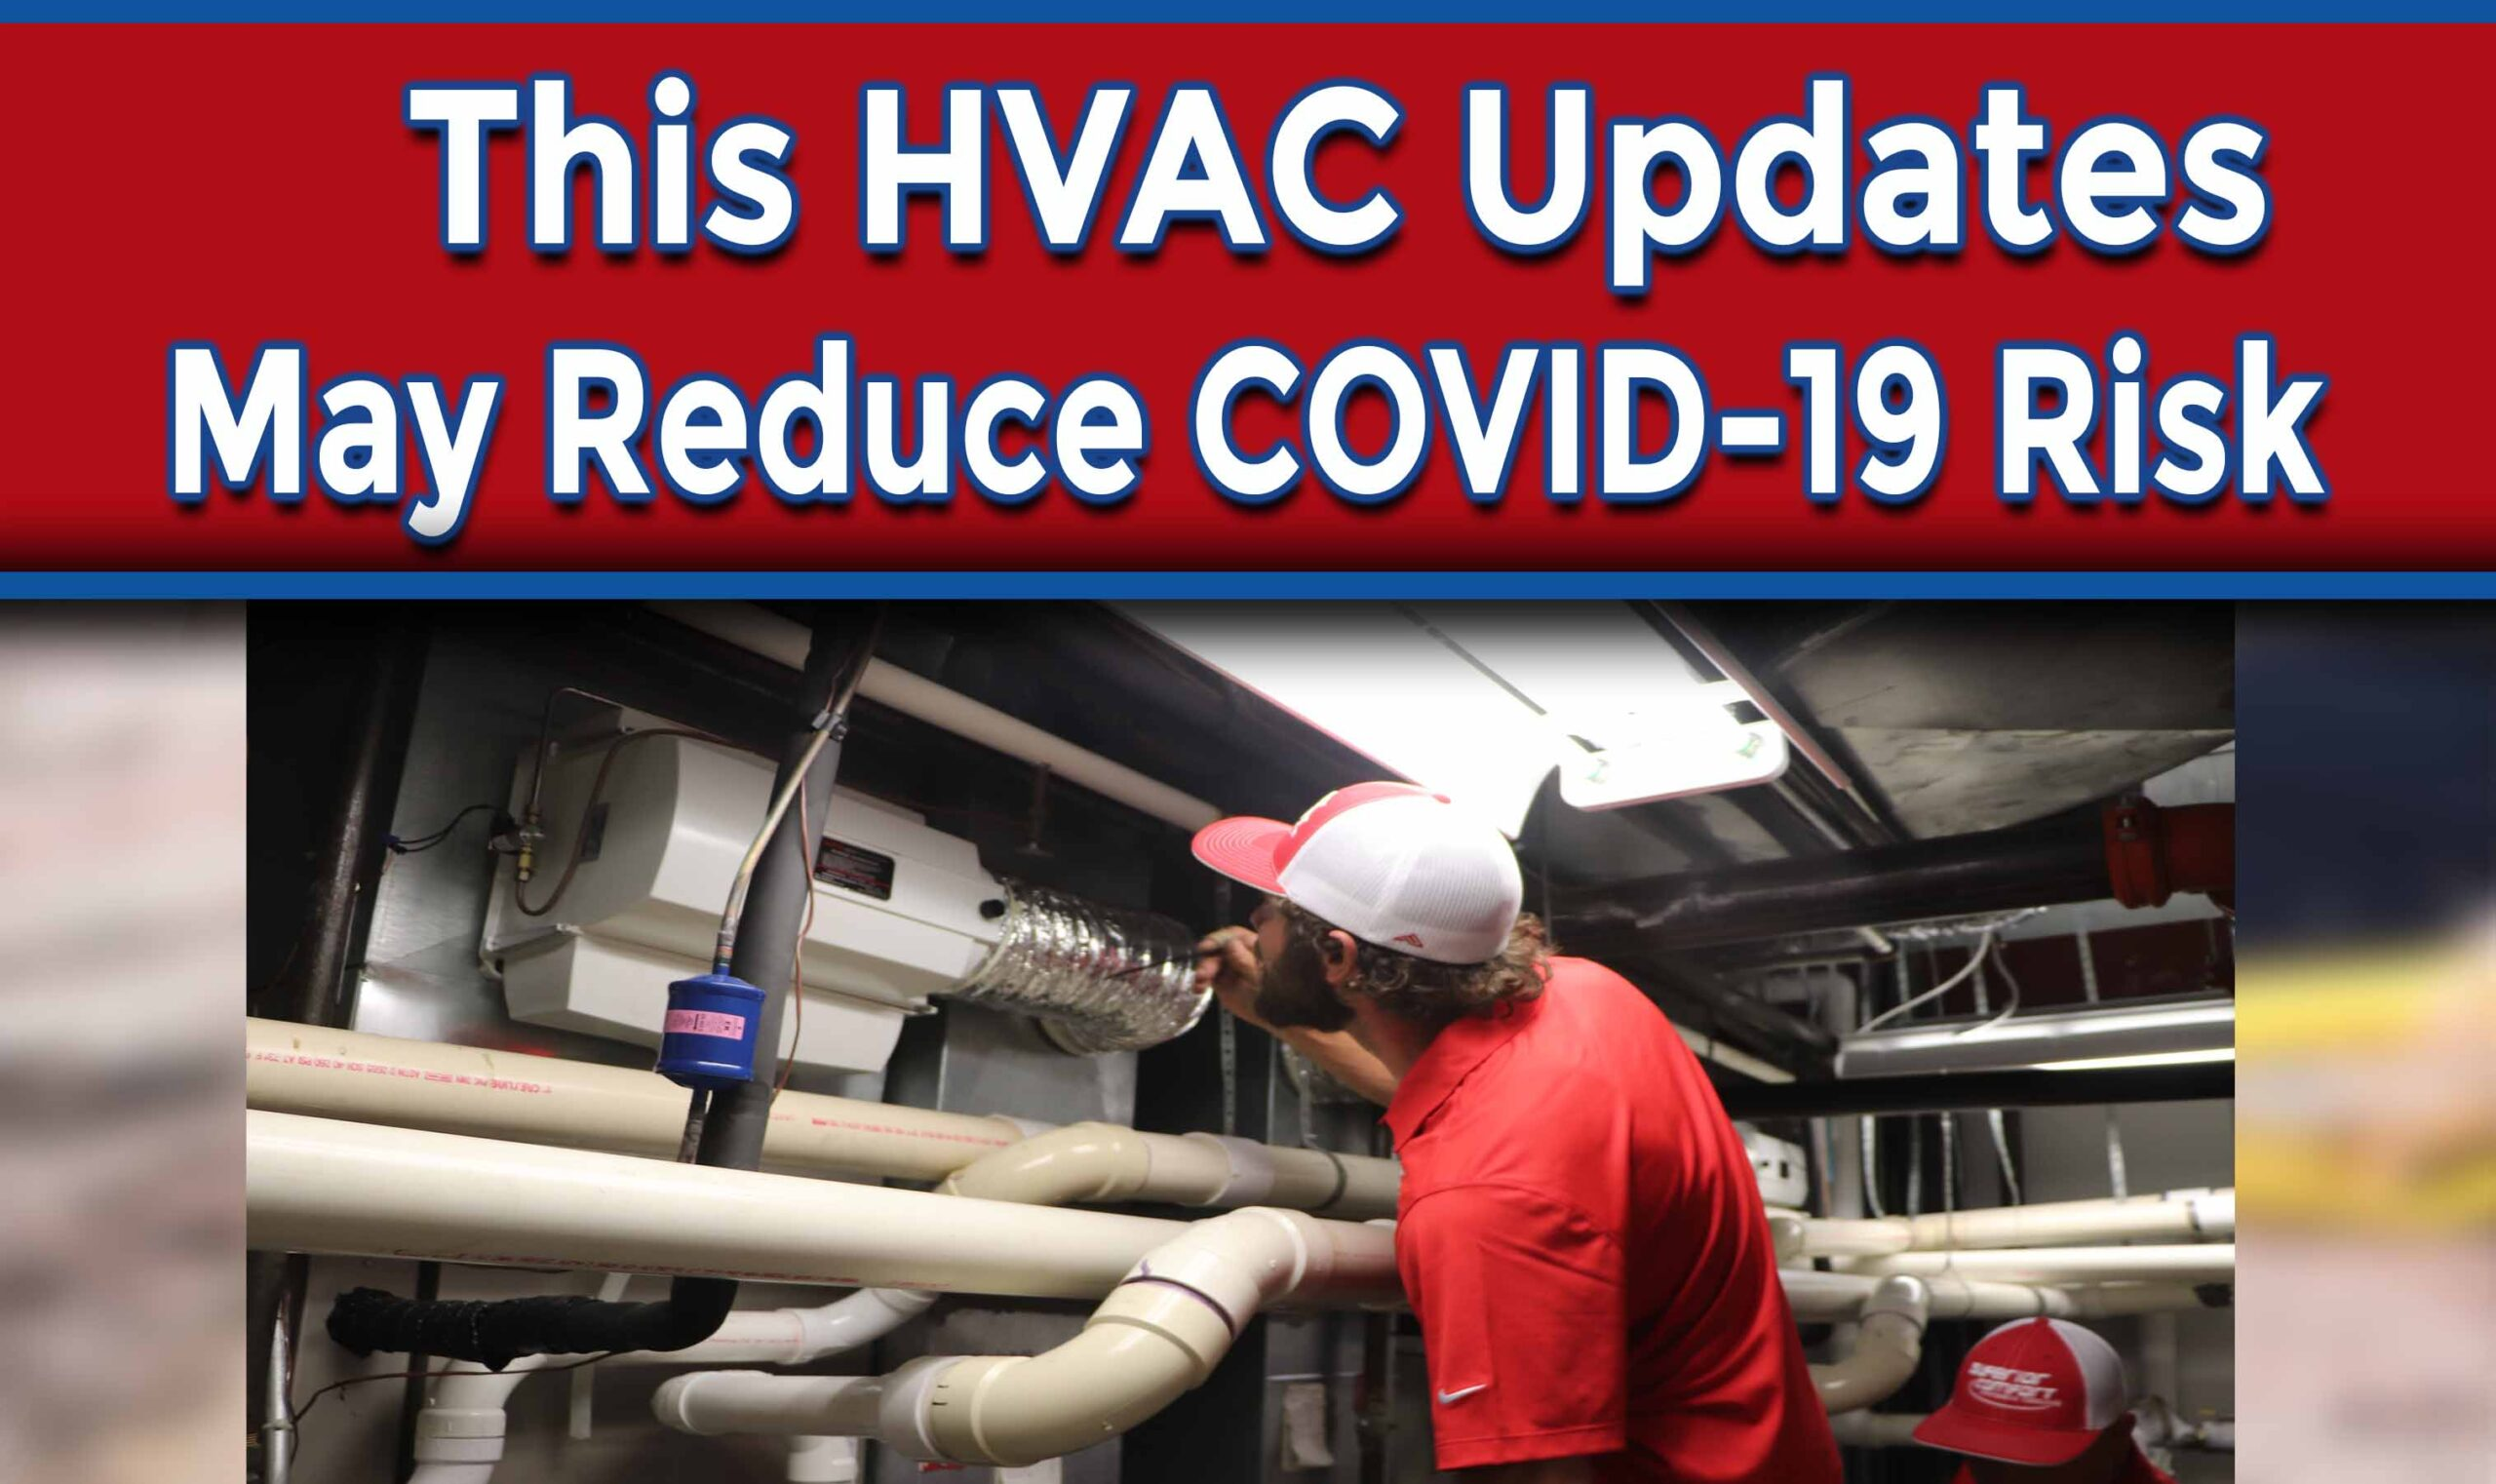 These HVAC Updates May Reduce COVID-19 Risk